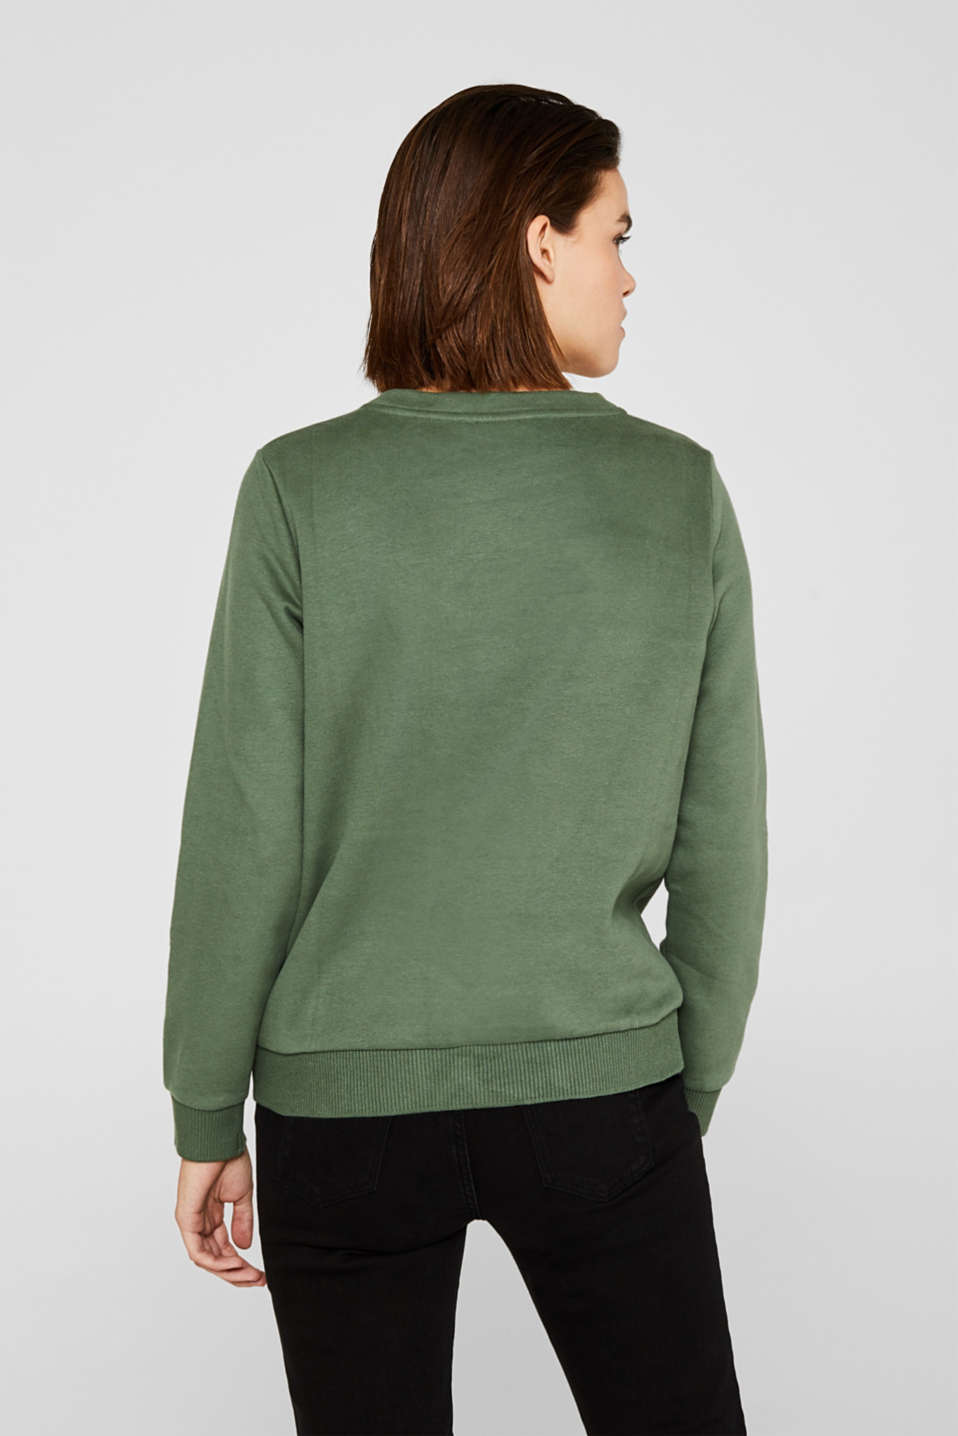 Logo sweatshirt with a feminine neckline, KHAKI GREEN, detail image number 3